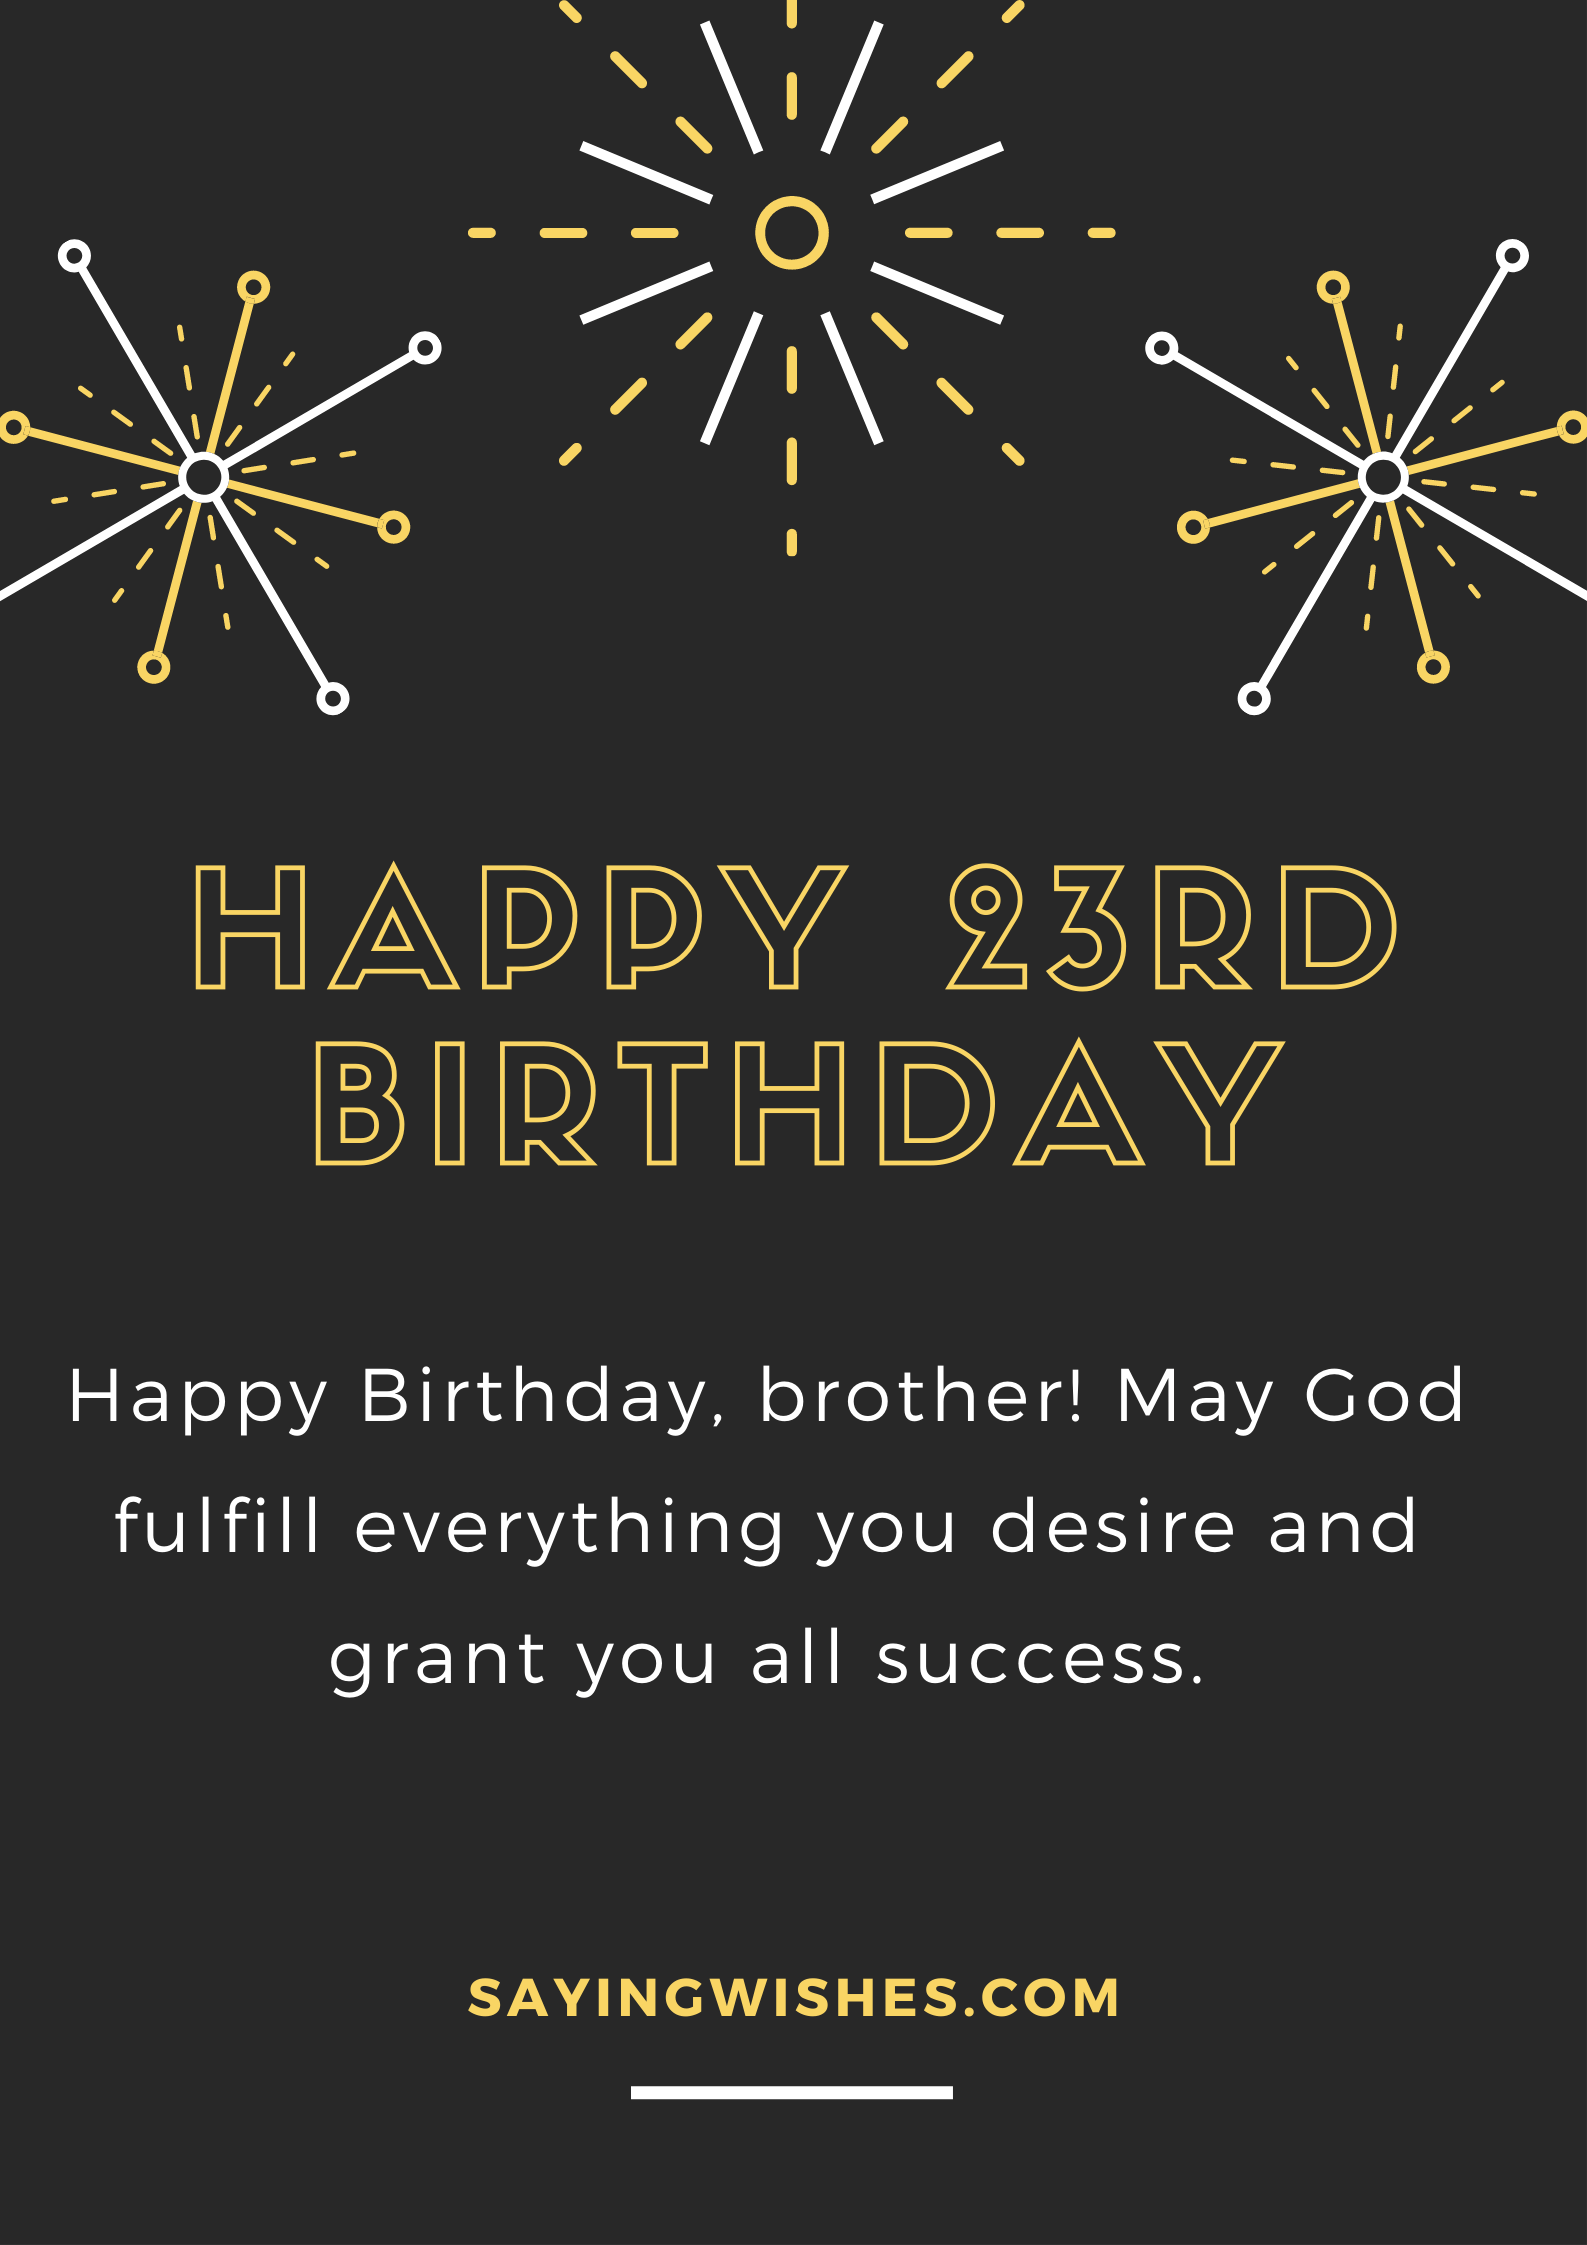 23rd birthday wishes for brother